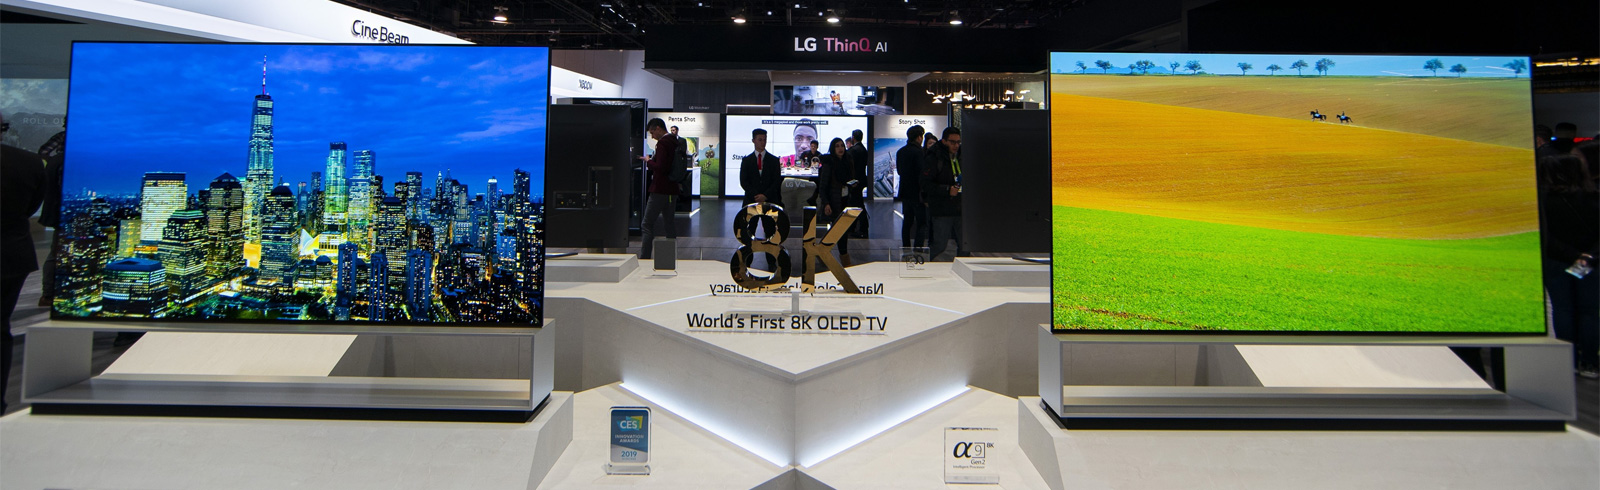 LG's first 8K OLED TV (88Z9) starts selling in South Korea